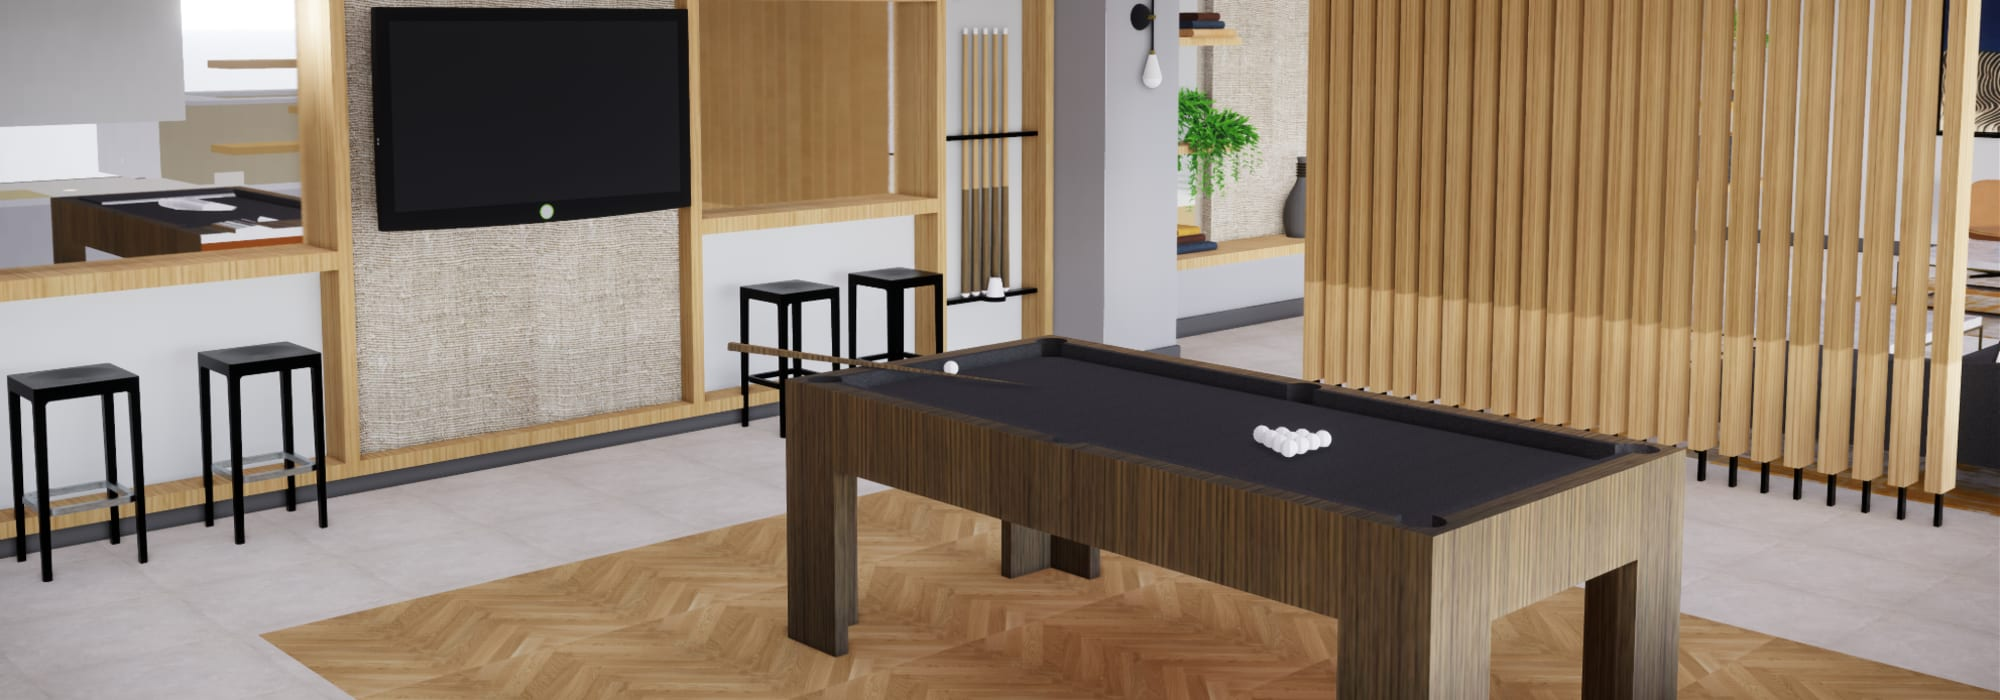 Rendering of pool table for residents to play on at The Piedmont in Tempe, Arizona